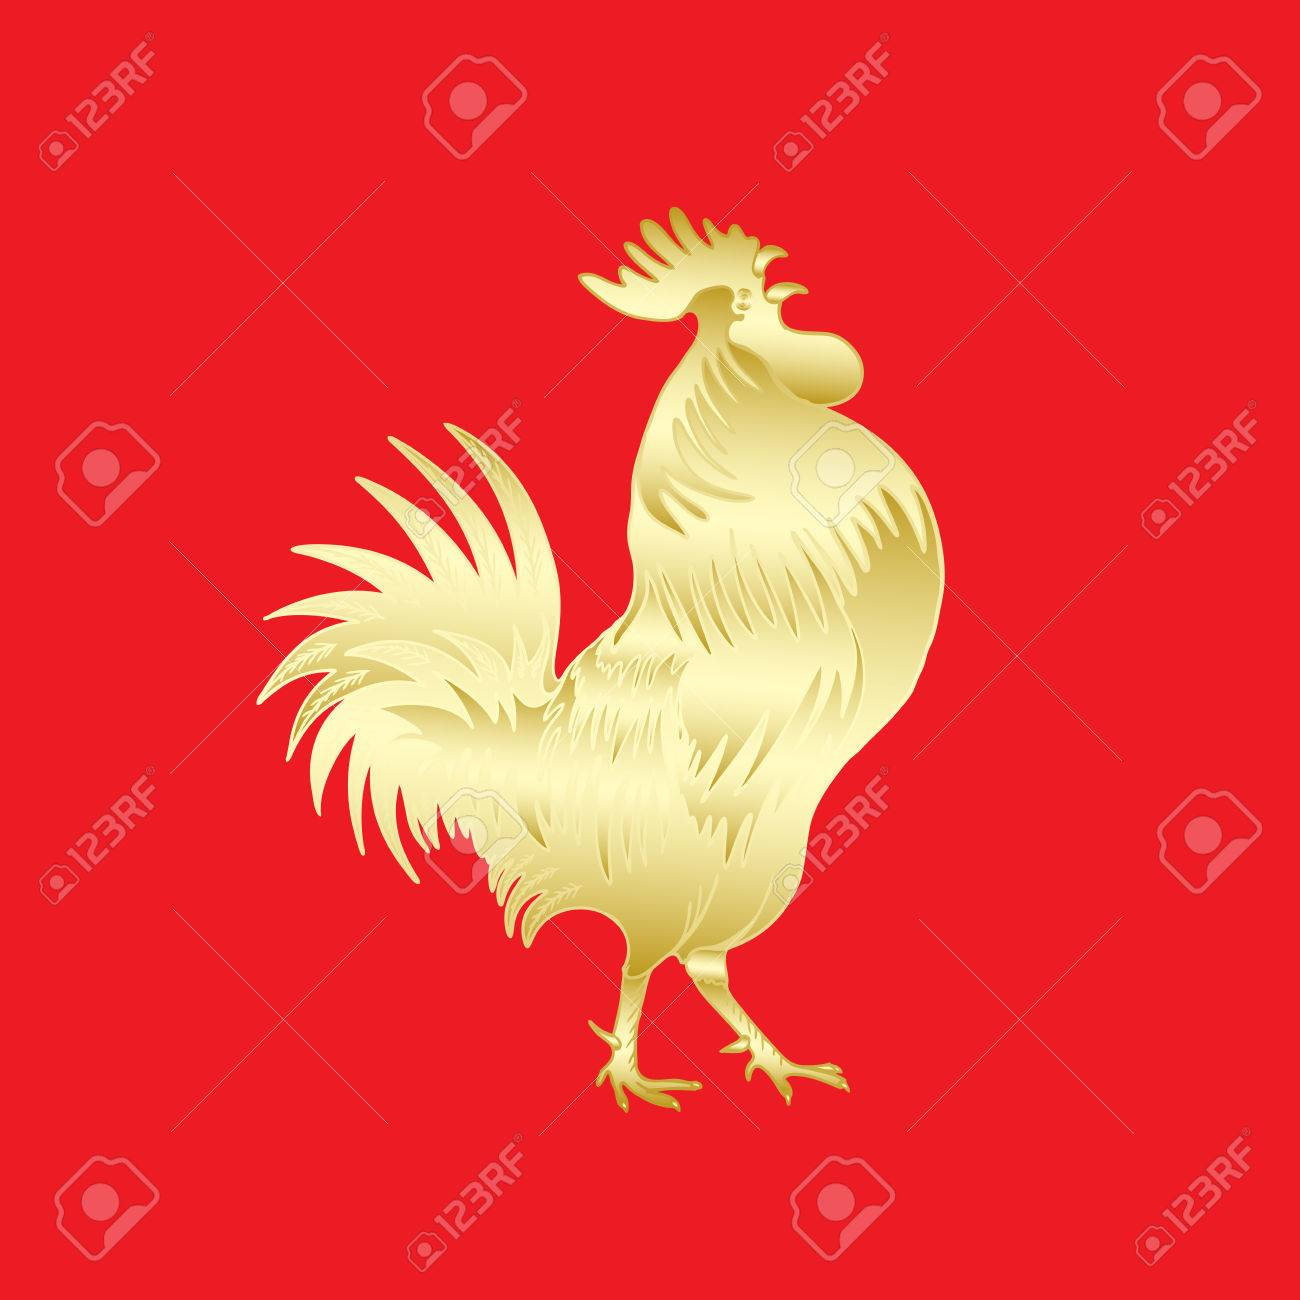 Chinese 2017 New Year Of The Rooster Symbol Gold Metallic Rooster